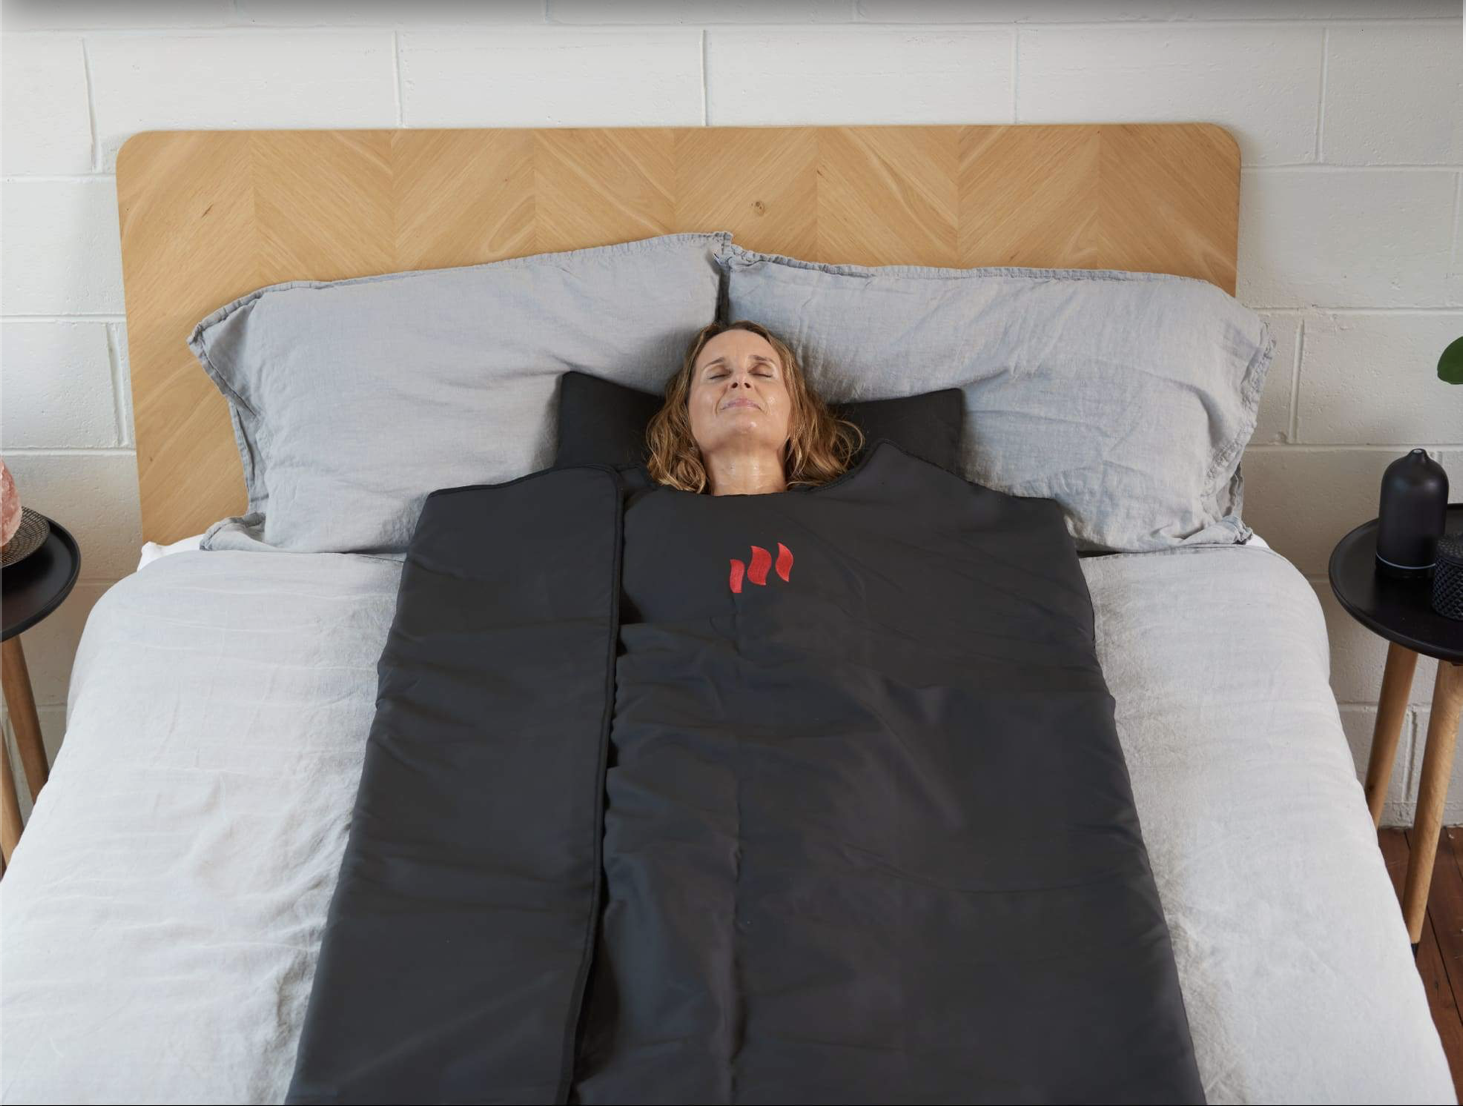 Get a Mental Wellness Boost with the MiHIGH Blanket